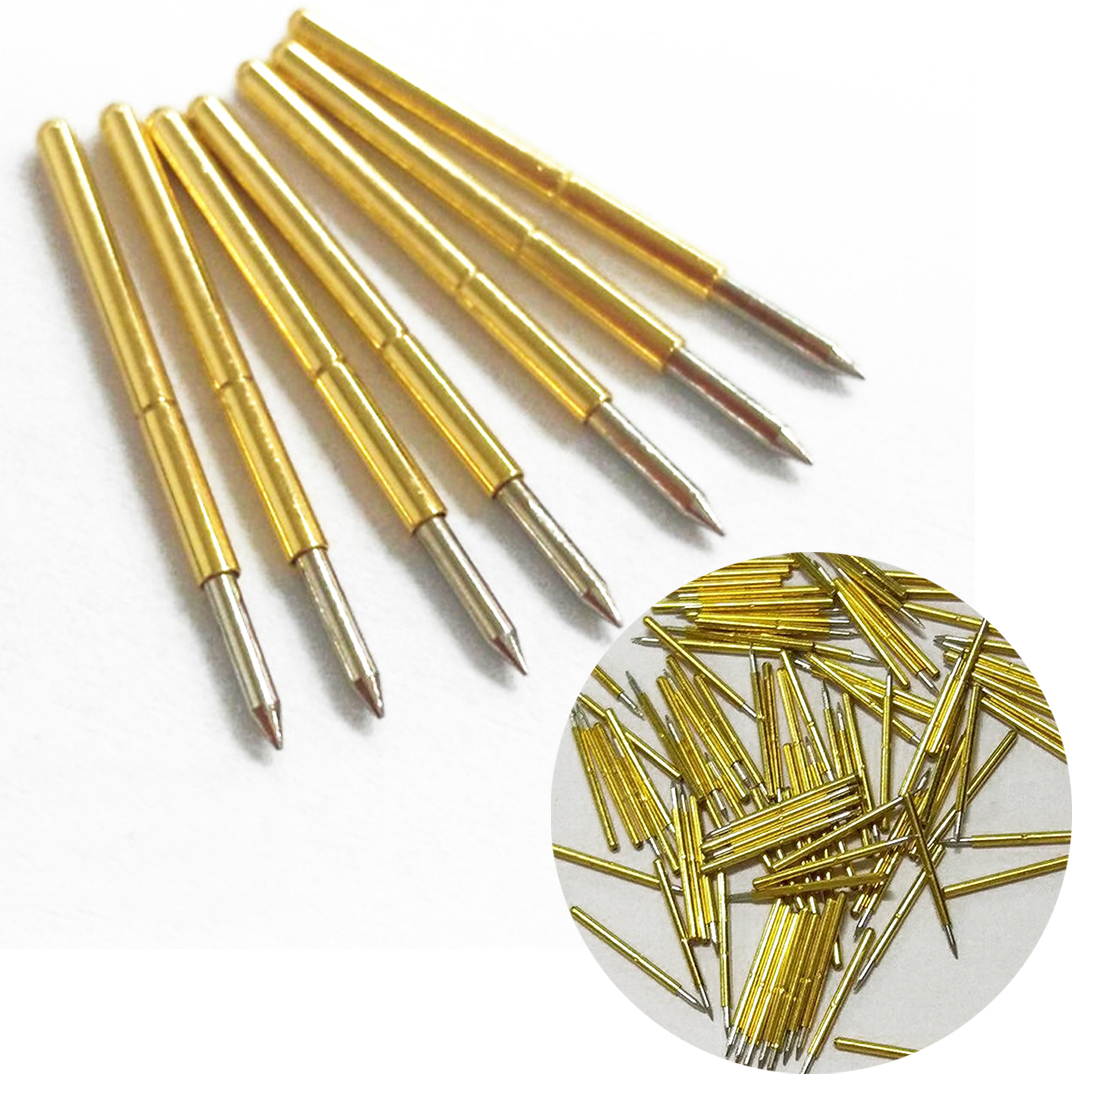 50Pcs P75-B1 Dia 1.02mm 100g Cusp Spear Spring Loaded Test Probes Pogo Pins;